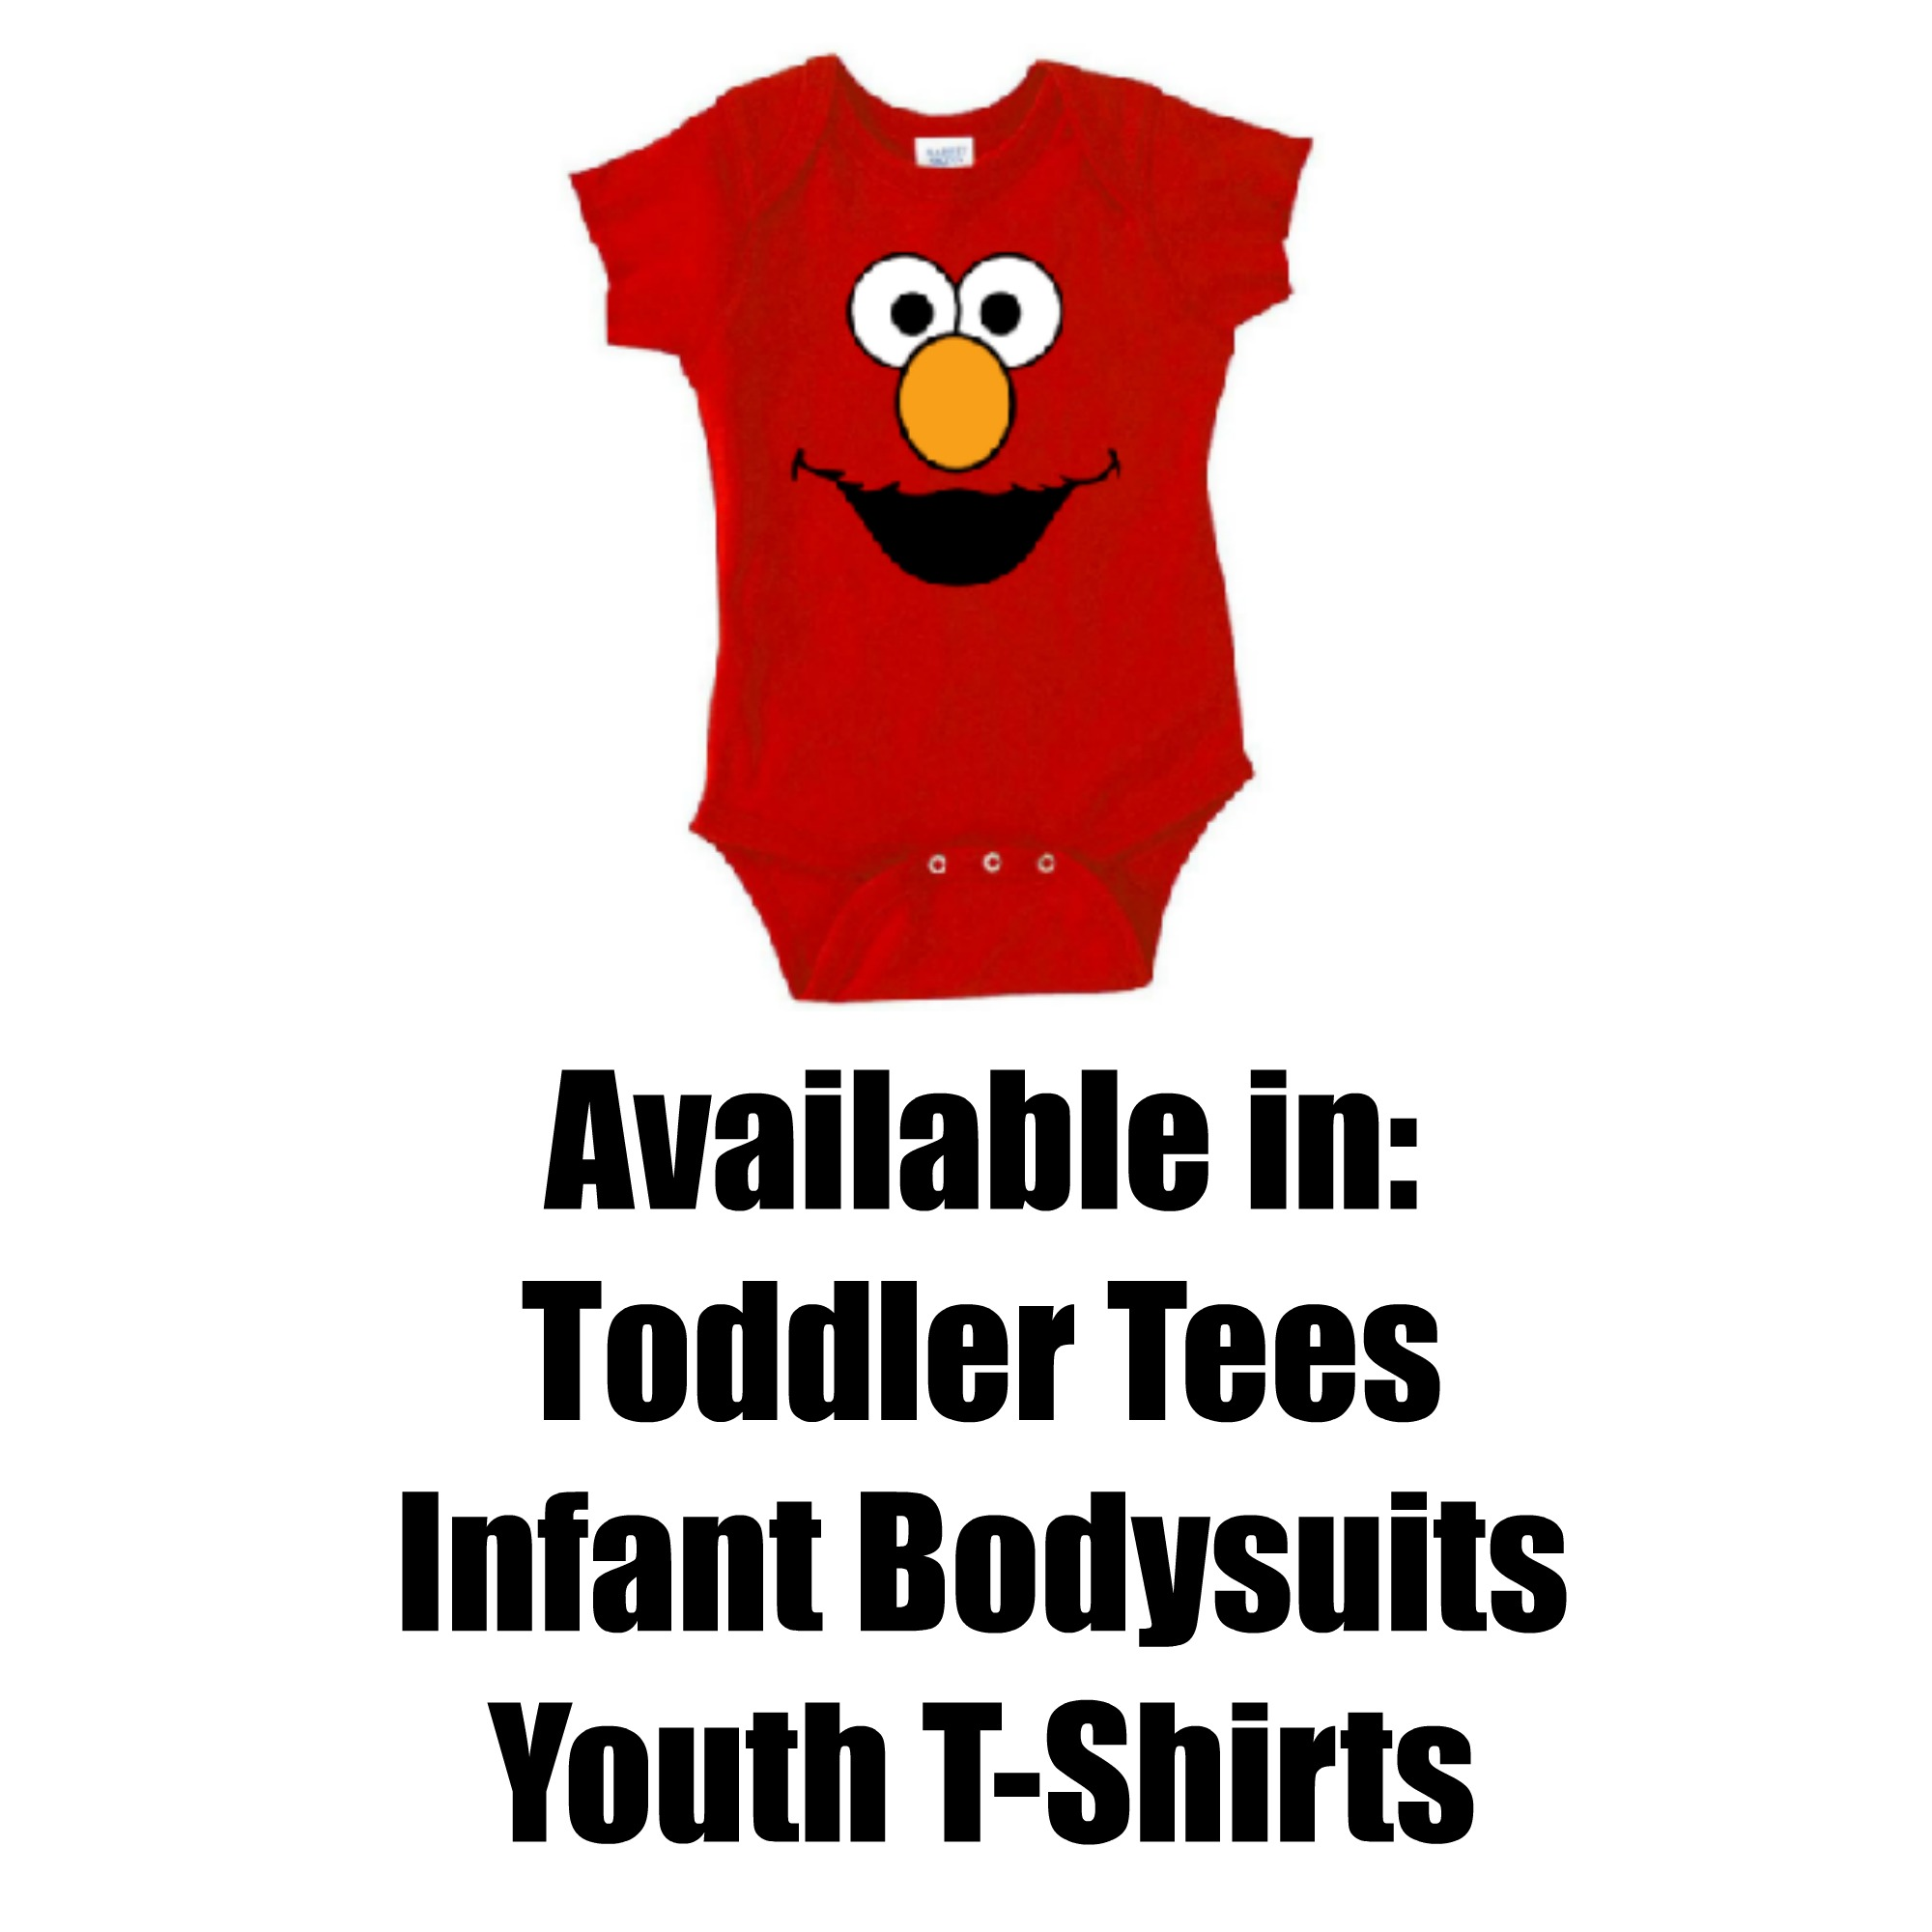 5b25c09e3 Sesame Street Elmo Face Toddler Tee Shirt on Storenvy